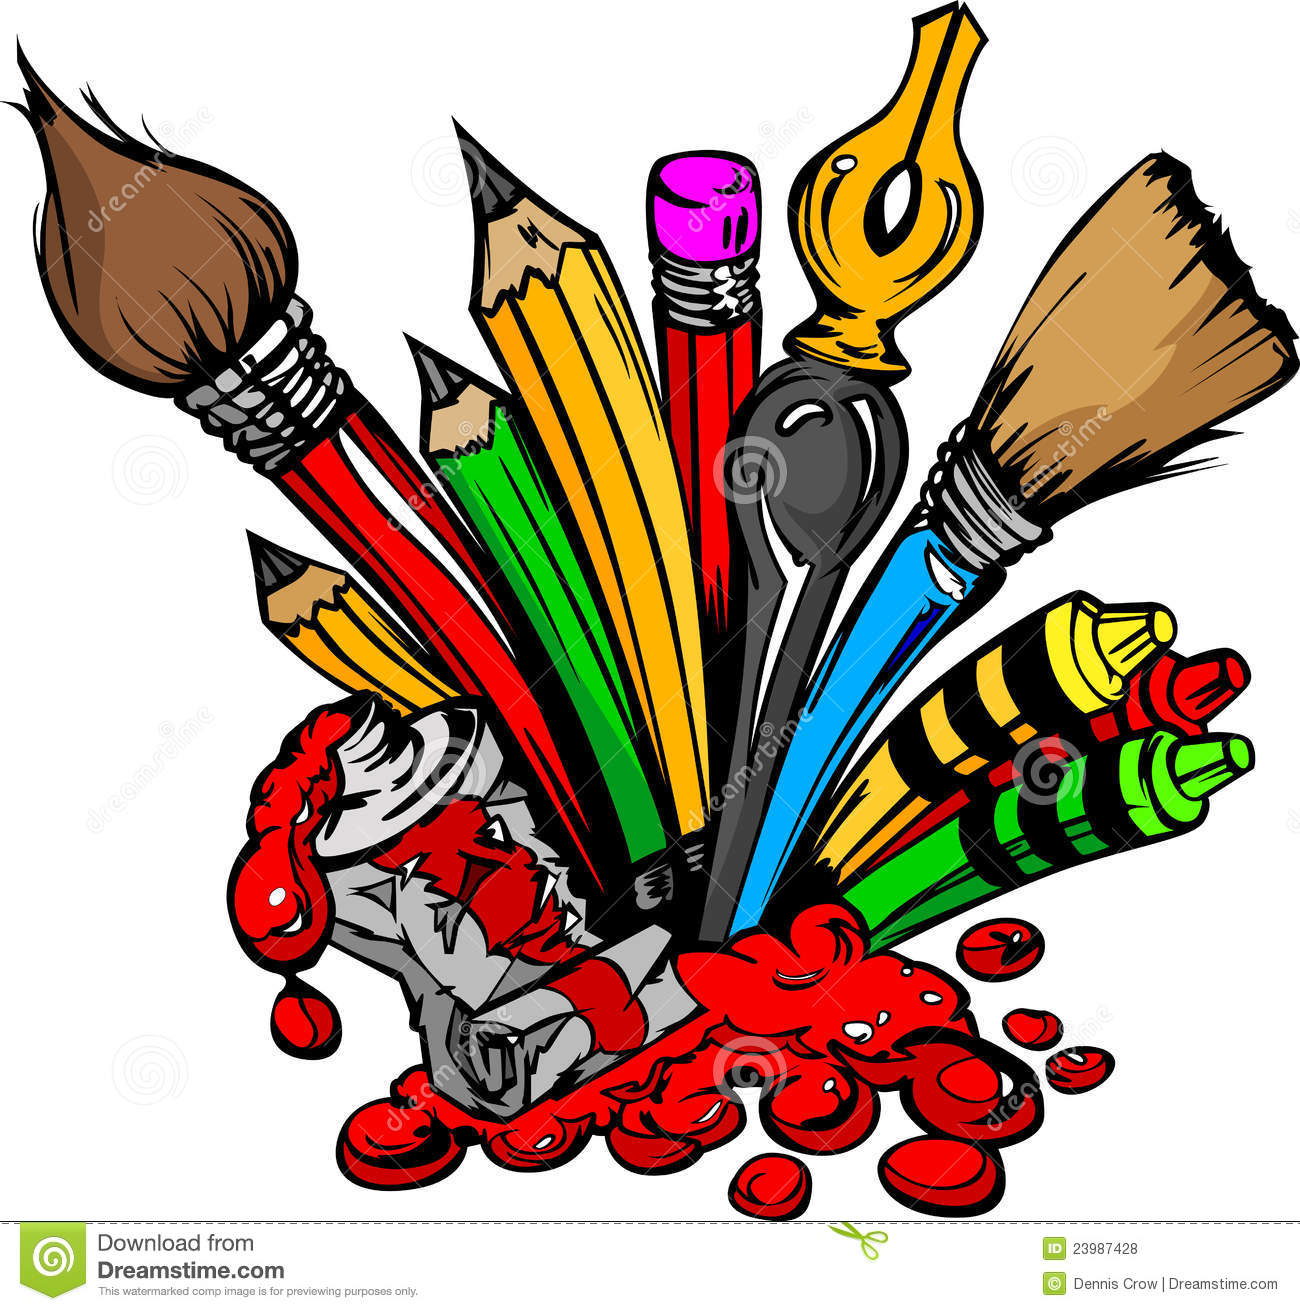 cartoon image of art supplies royalty free stock photos image